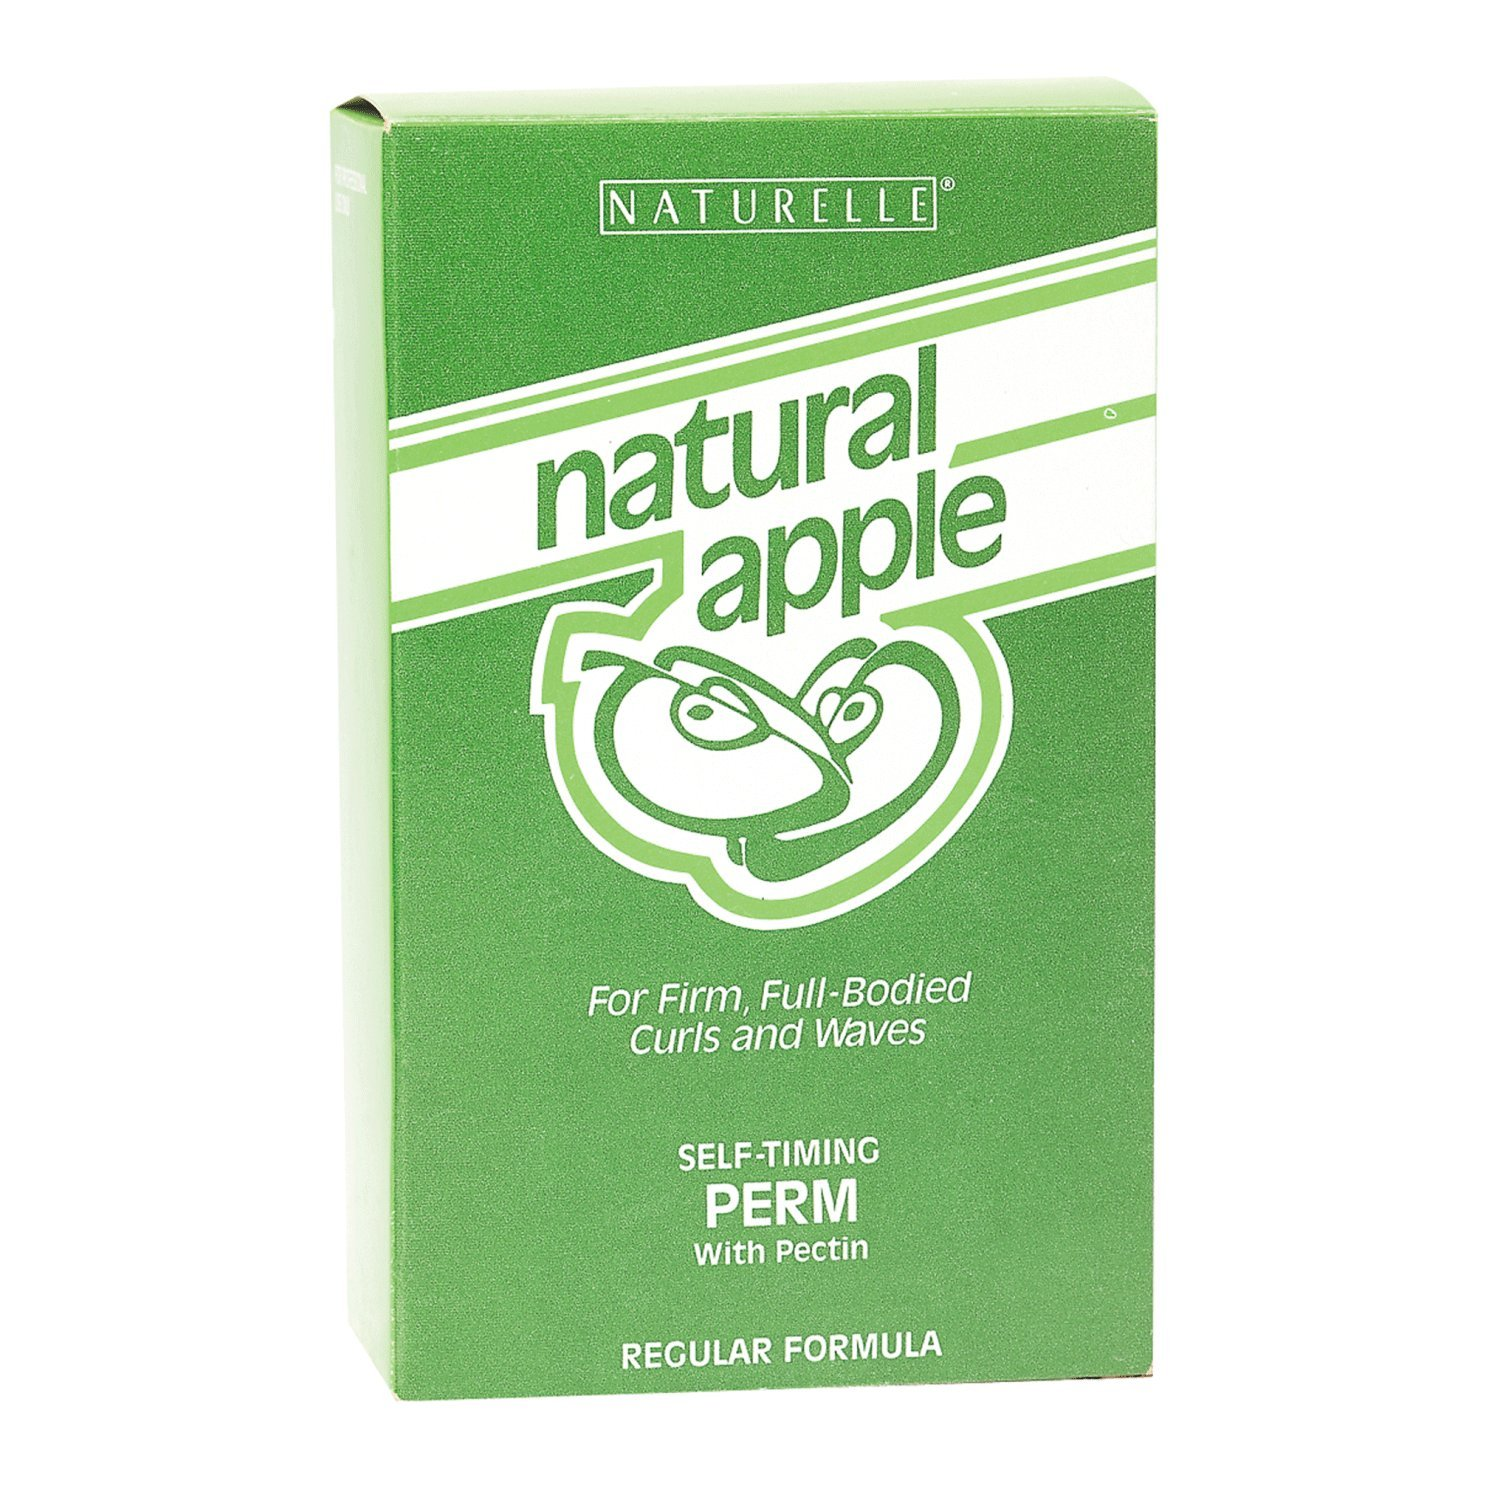 Zotos Naturelle Natural Apple Self-Timing Perm with Pectin - Regular Formula